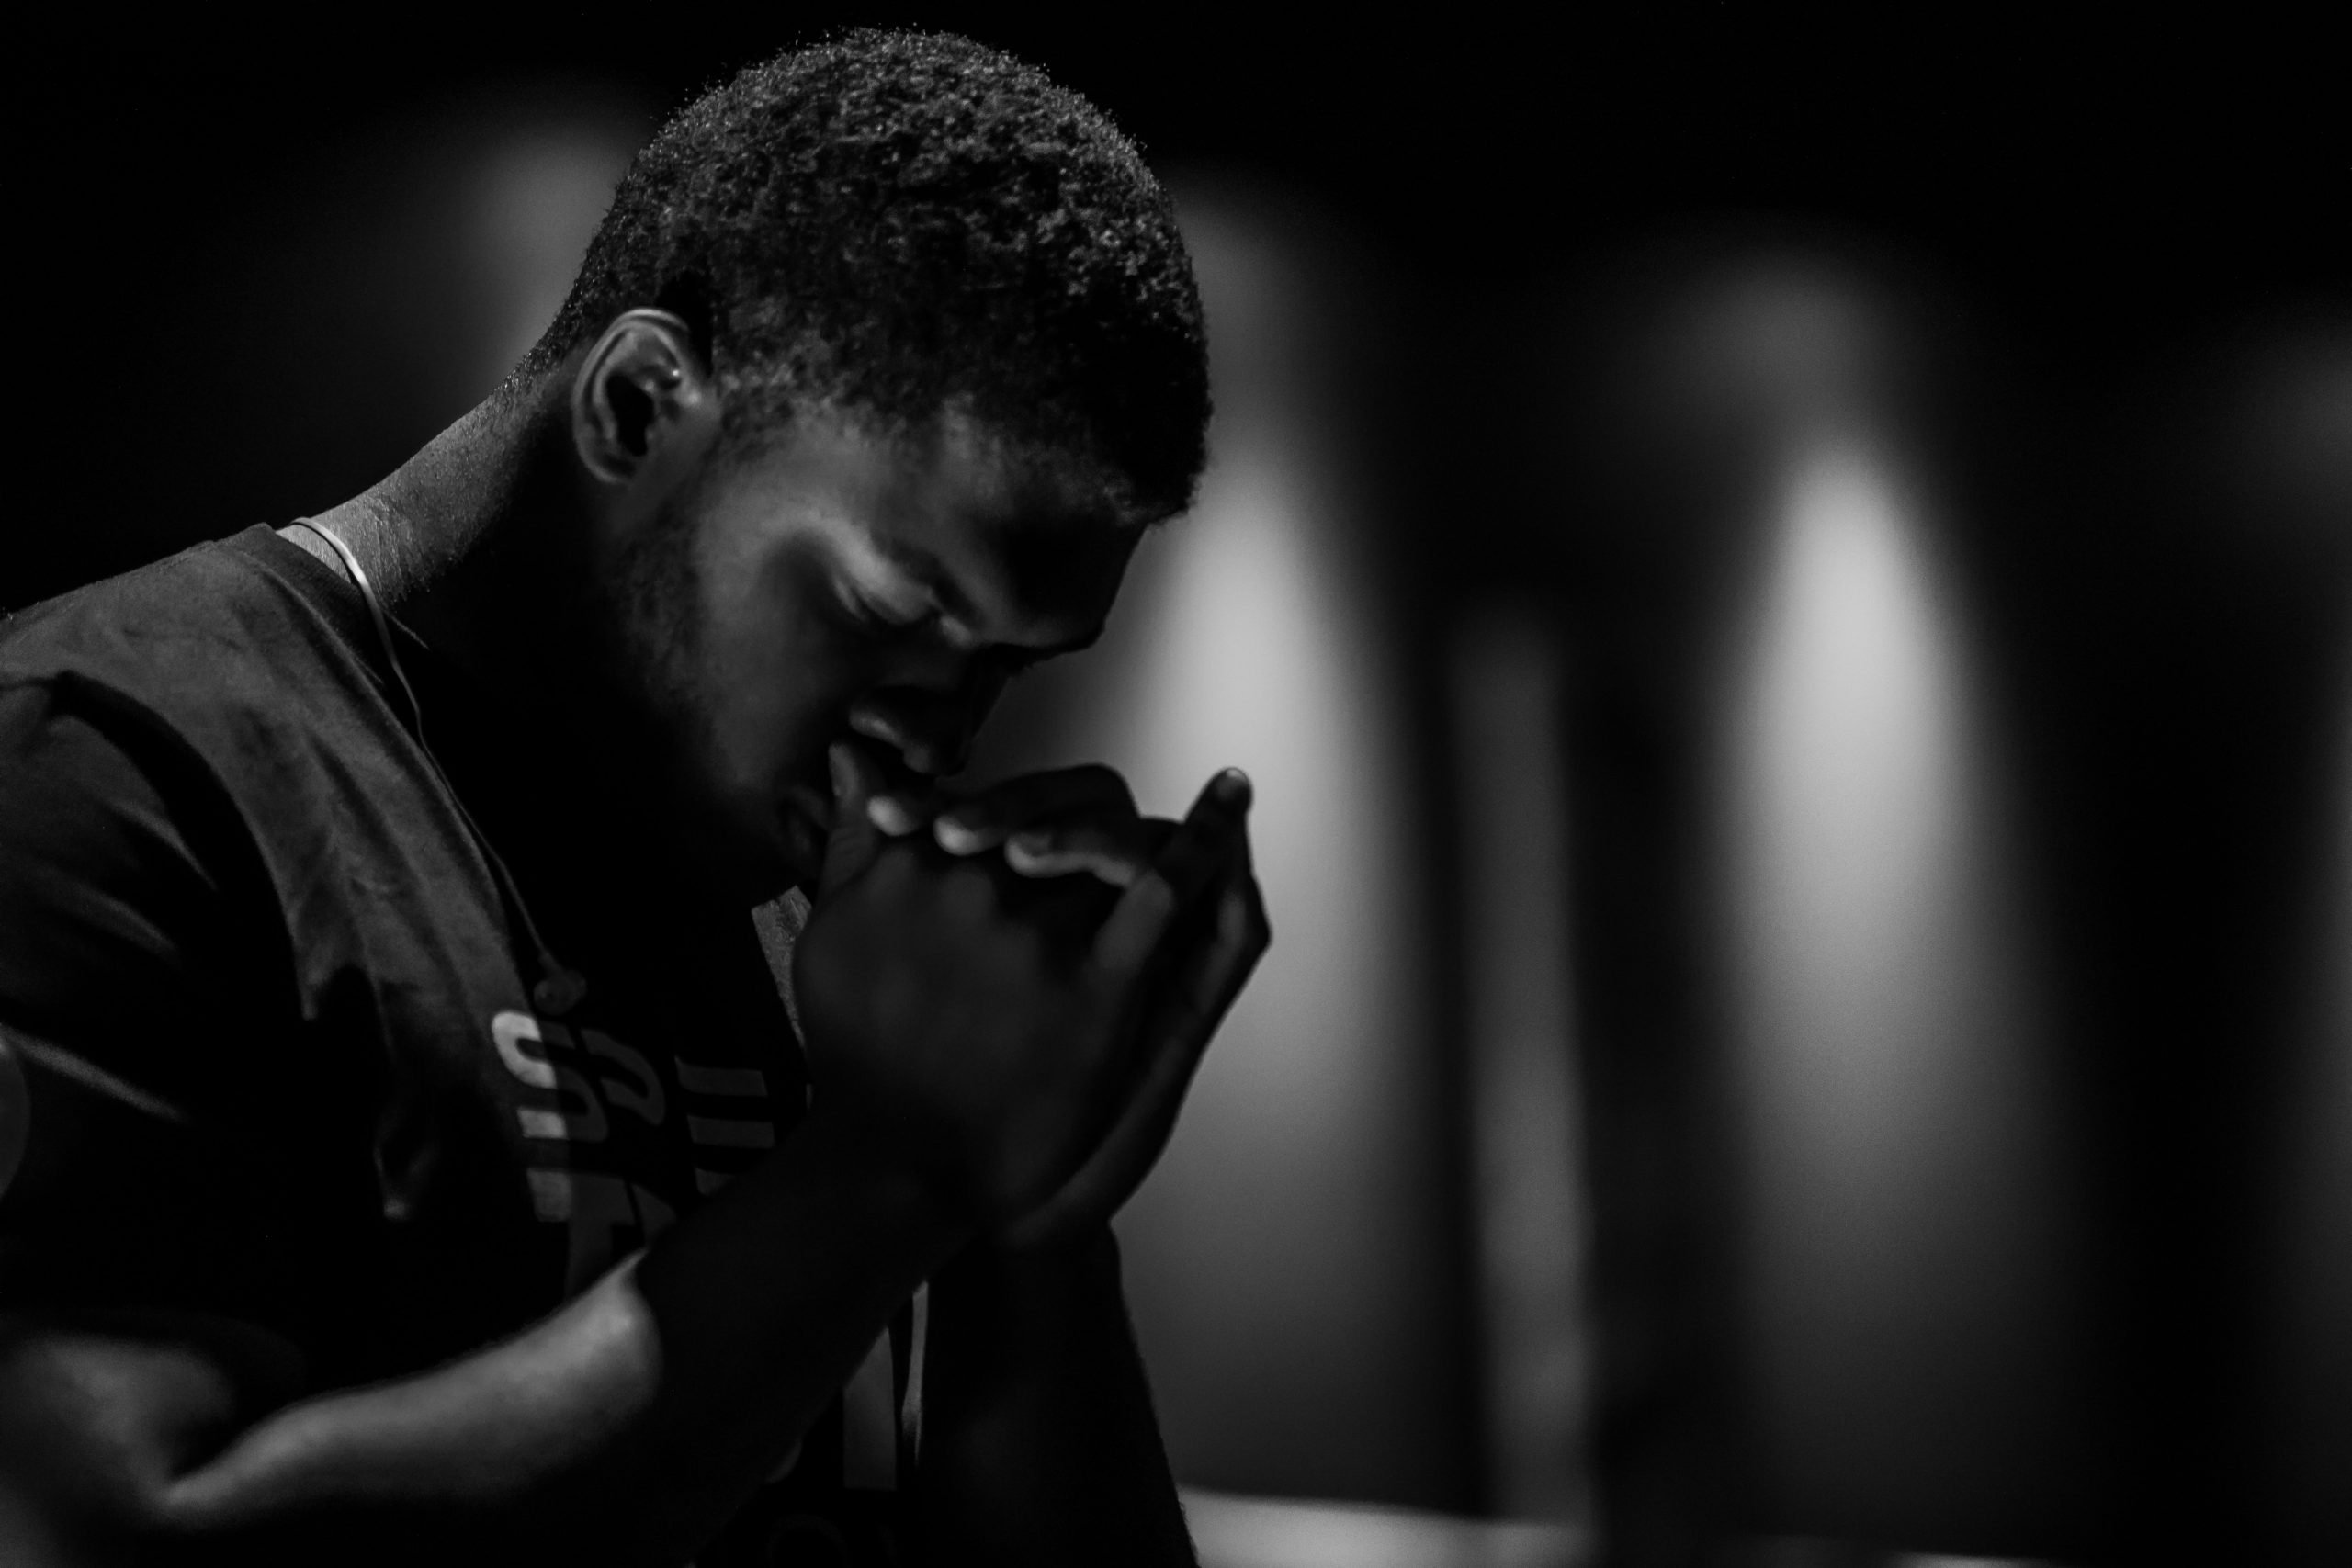 Man praying for deliverance from the wicked